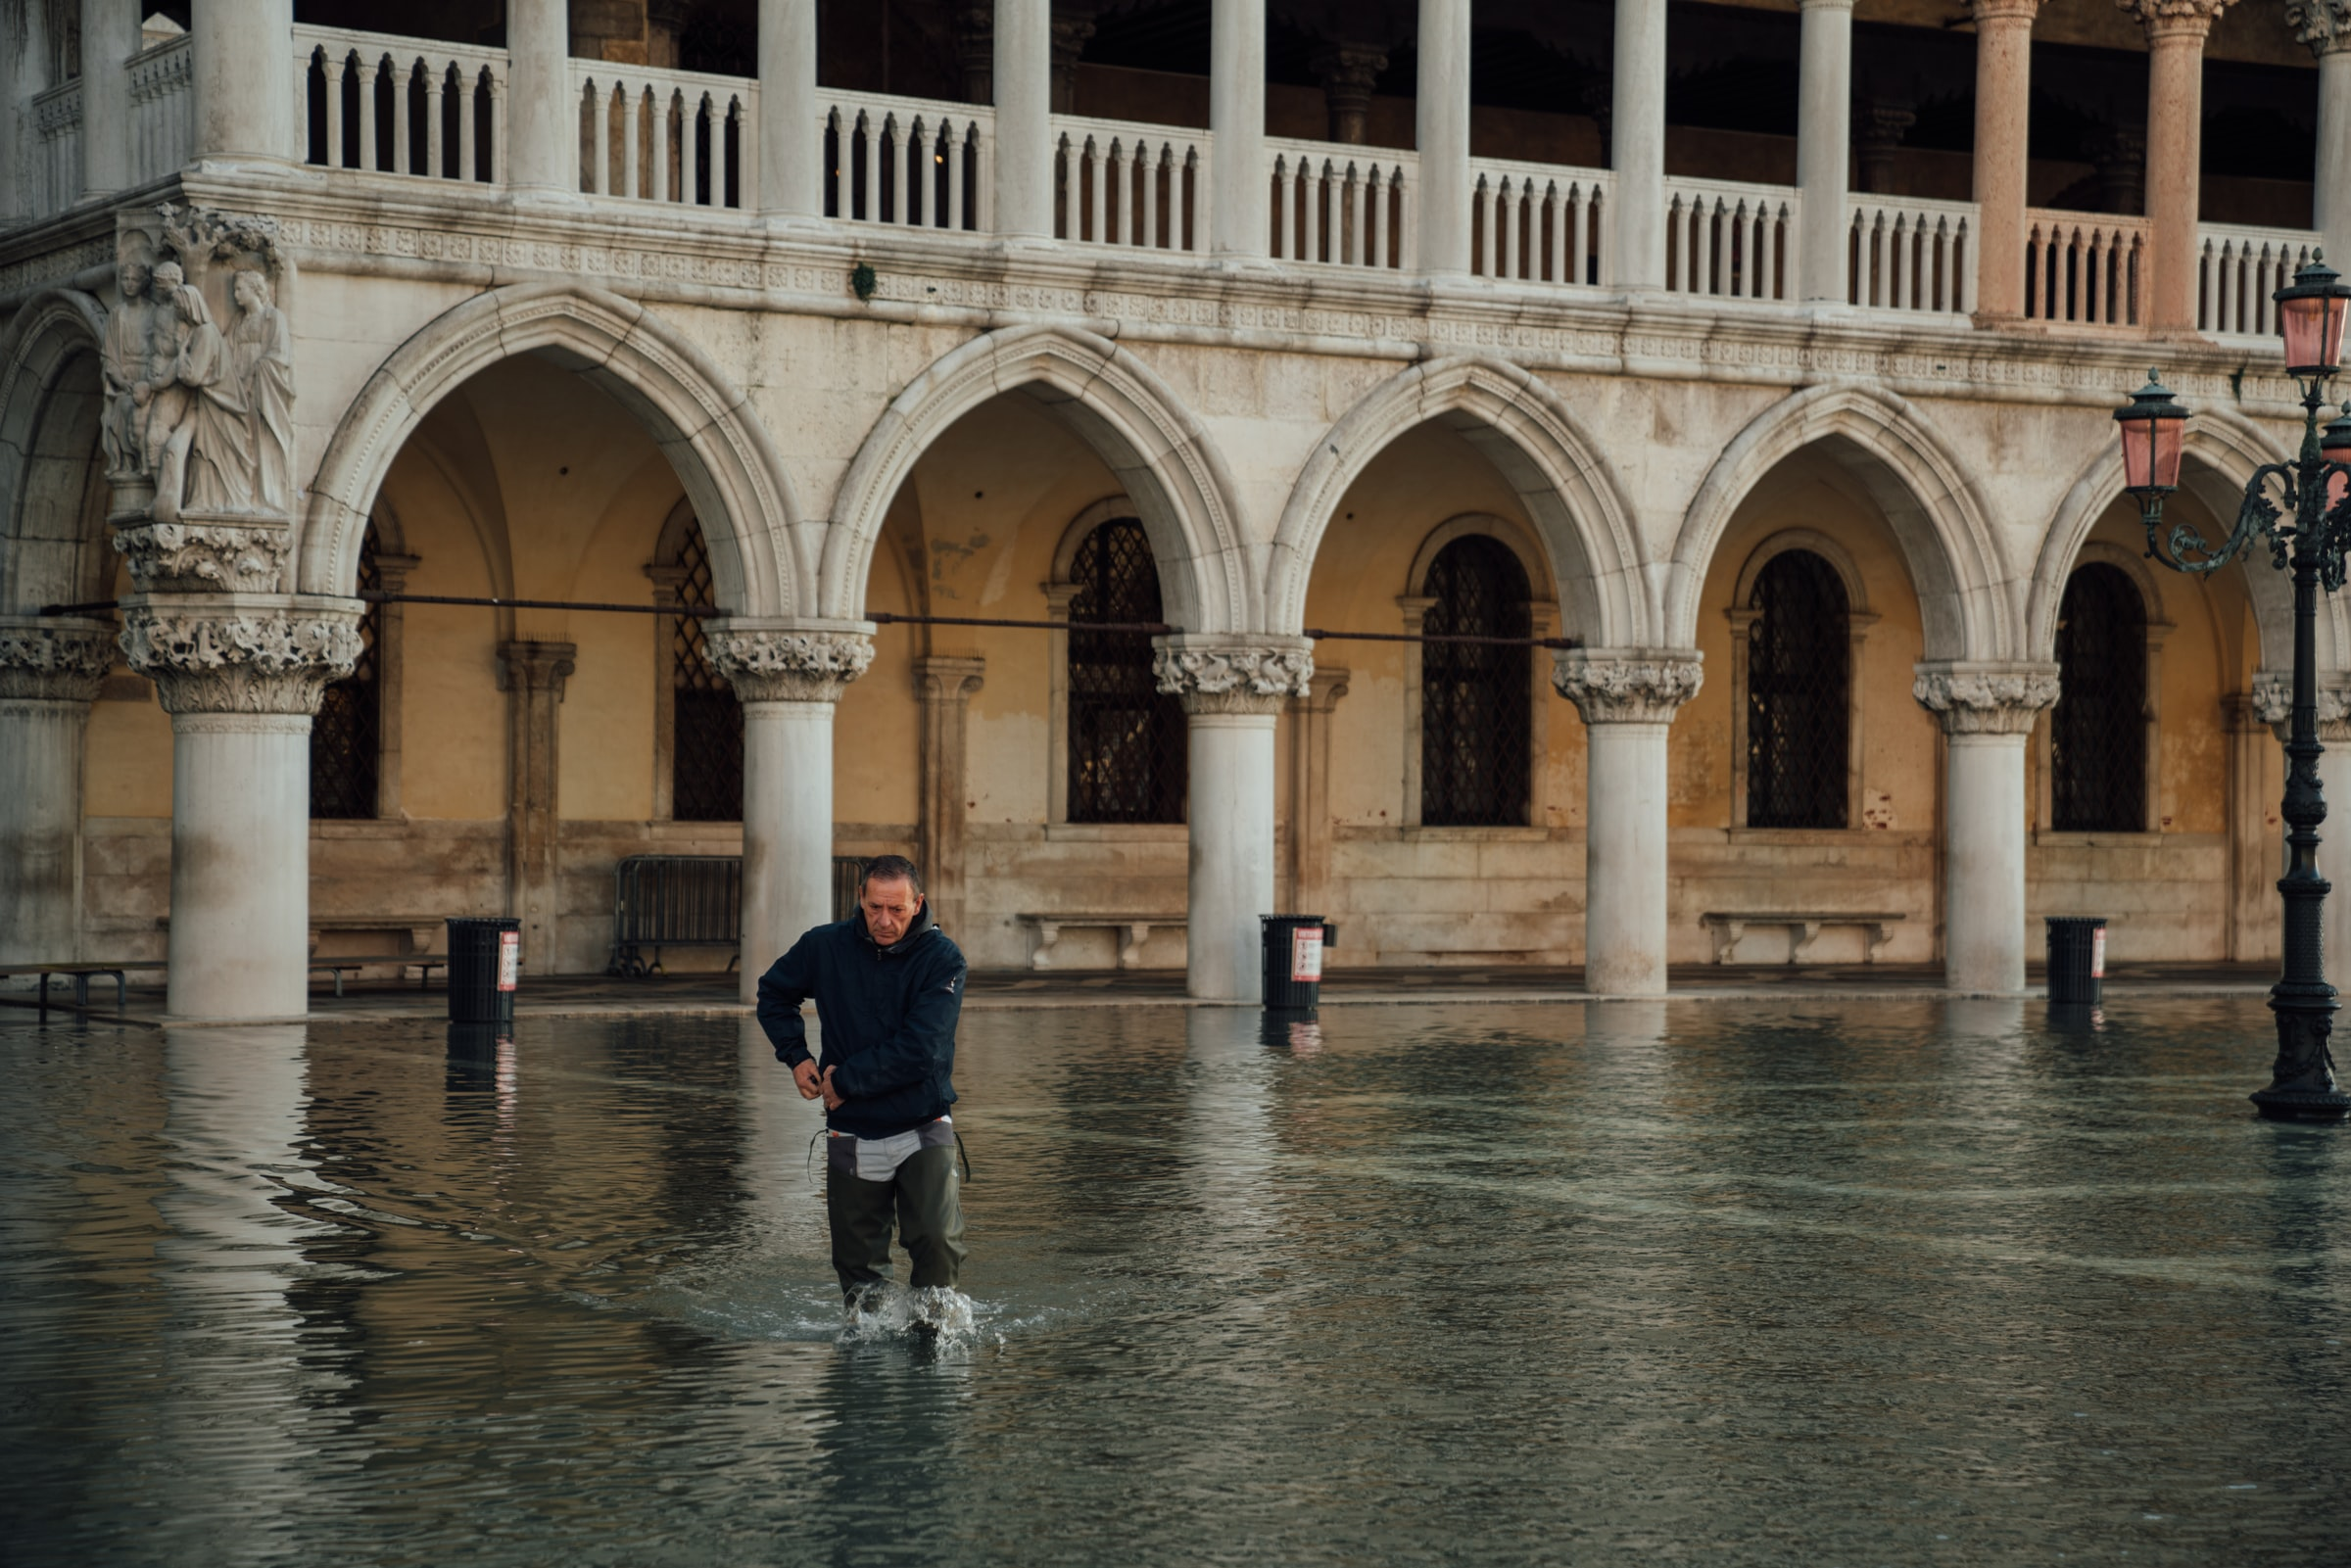 Flooded square